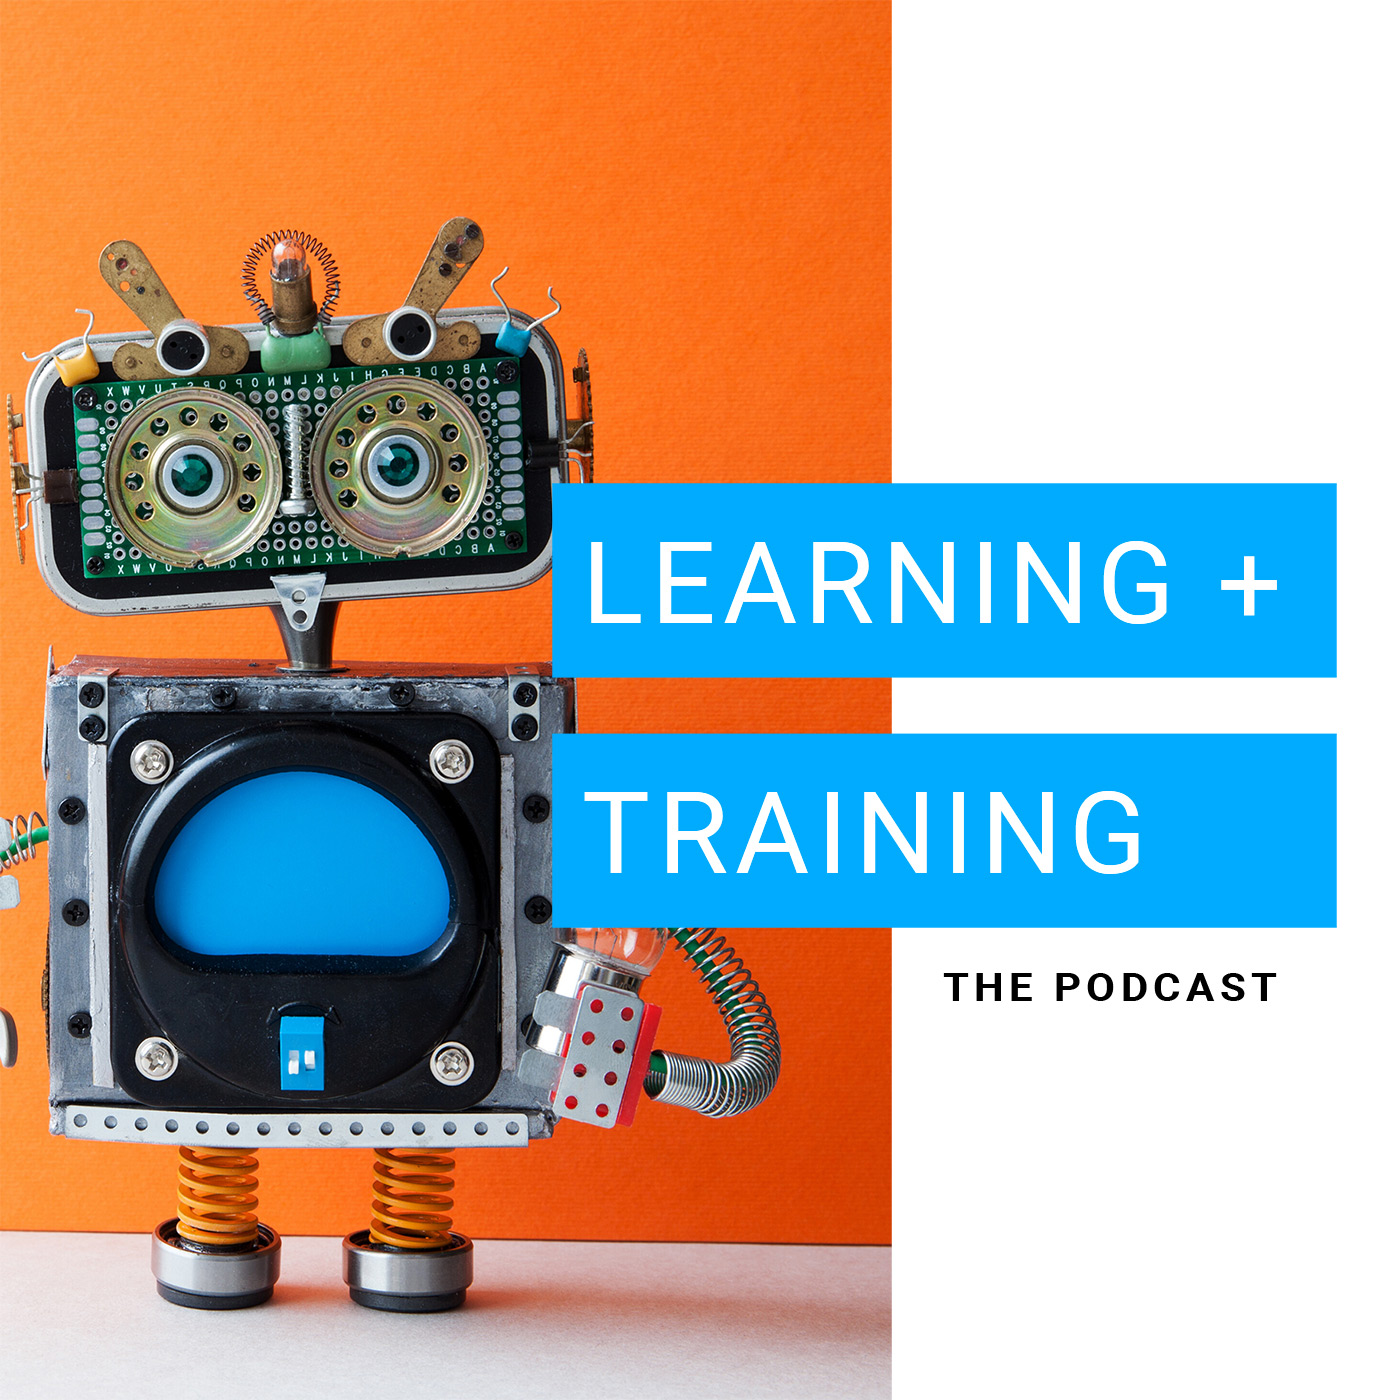 The Learning + Training Podcast